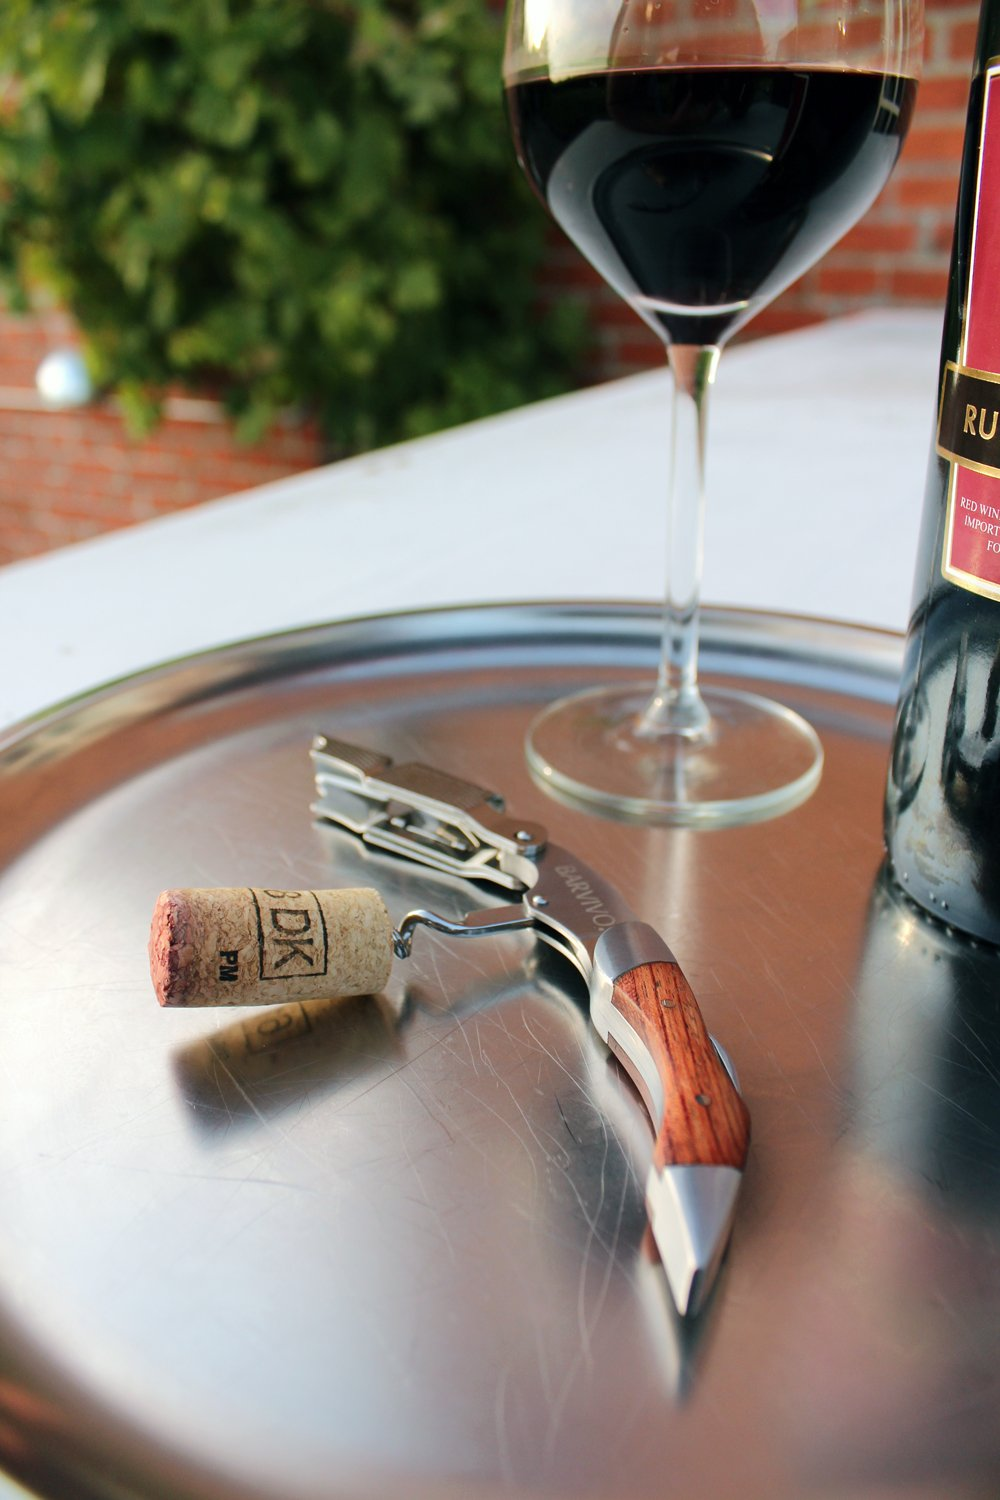 Professional Waiters Corkscrew by Barvivo - This Wine Opener is Used to Open Beer and Wine Bottles by Waiters, Sommelier and Bartenders Around the World. Made of Stainless Steel and Natural Rosewood. by Barvivo (Image #3)